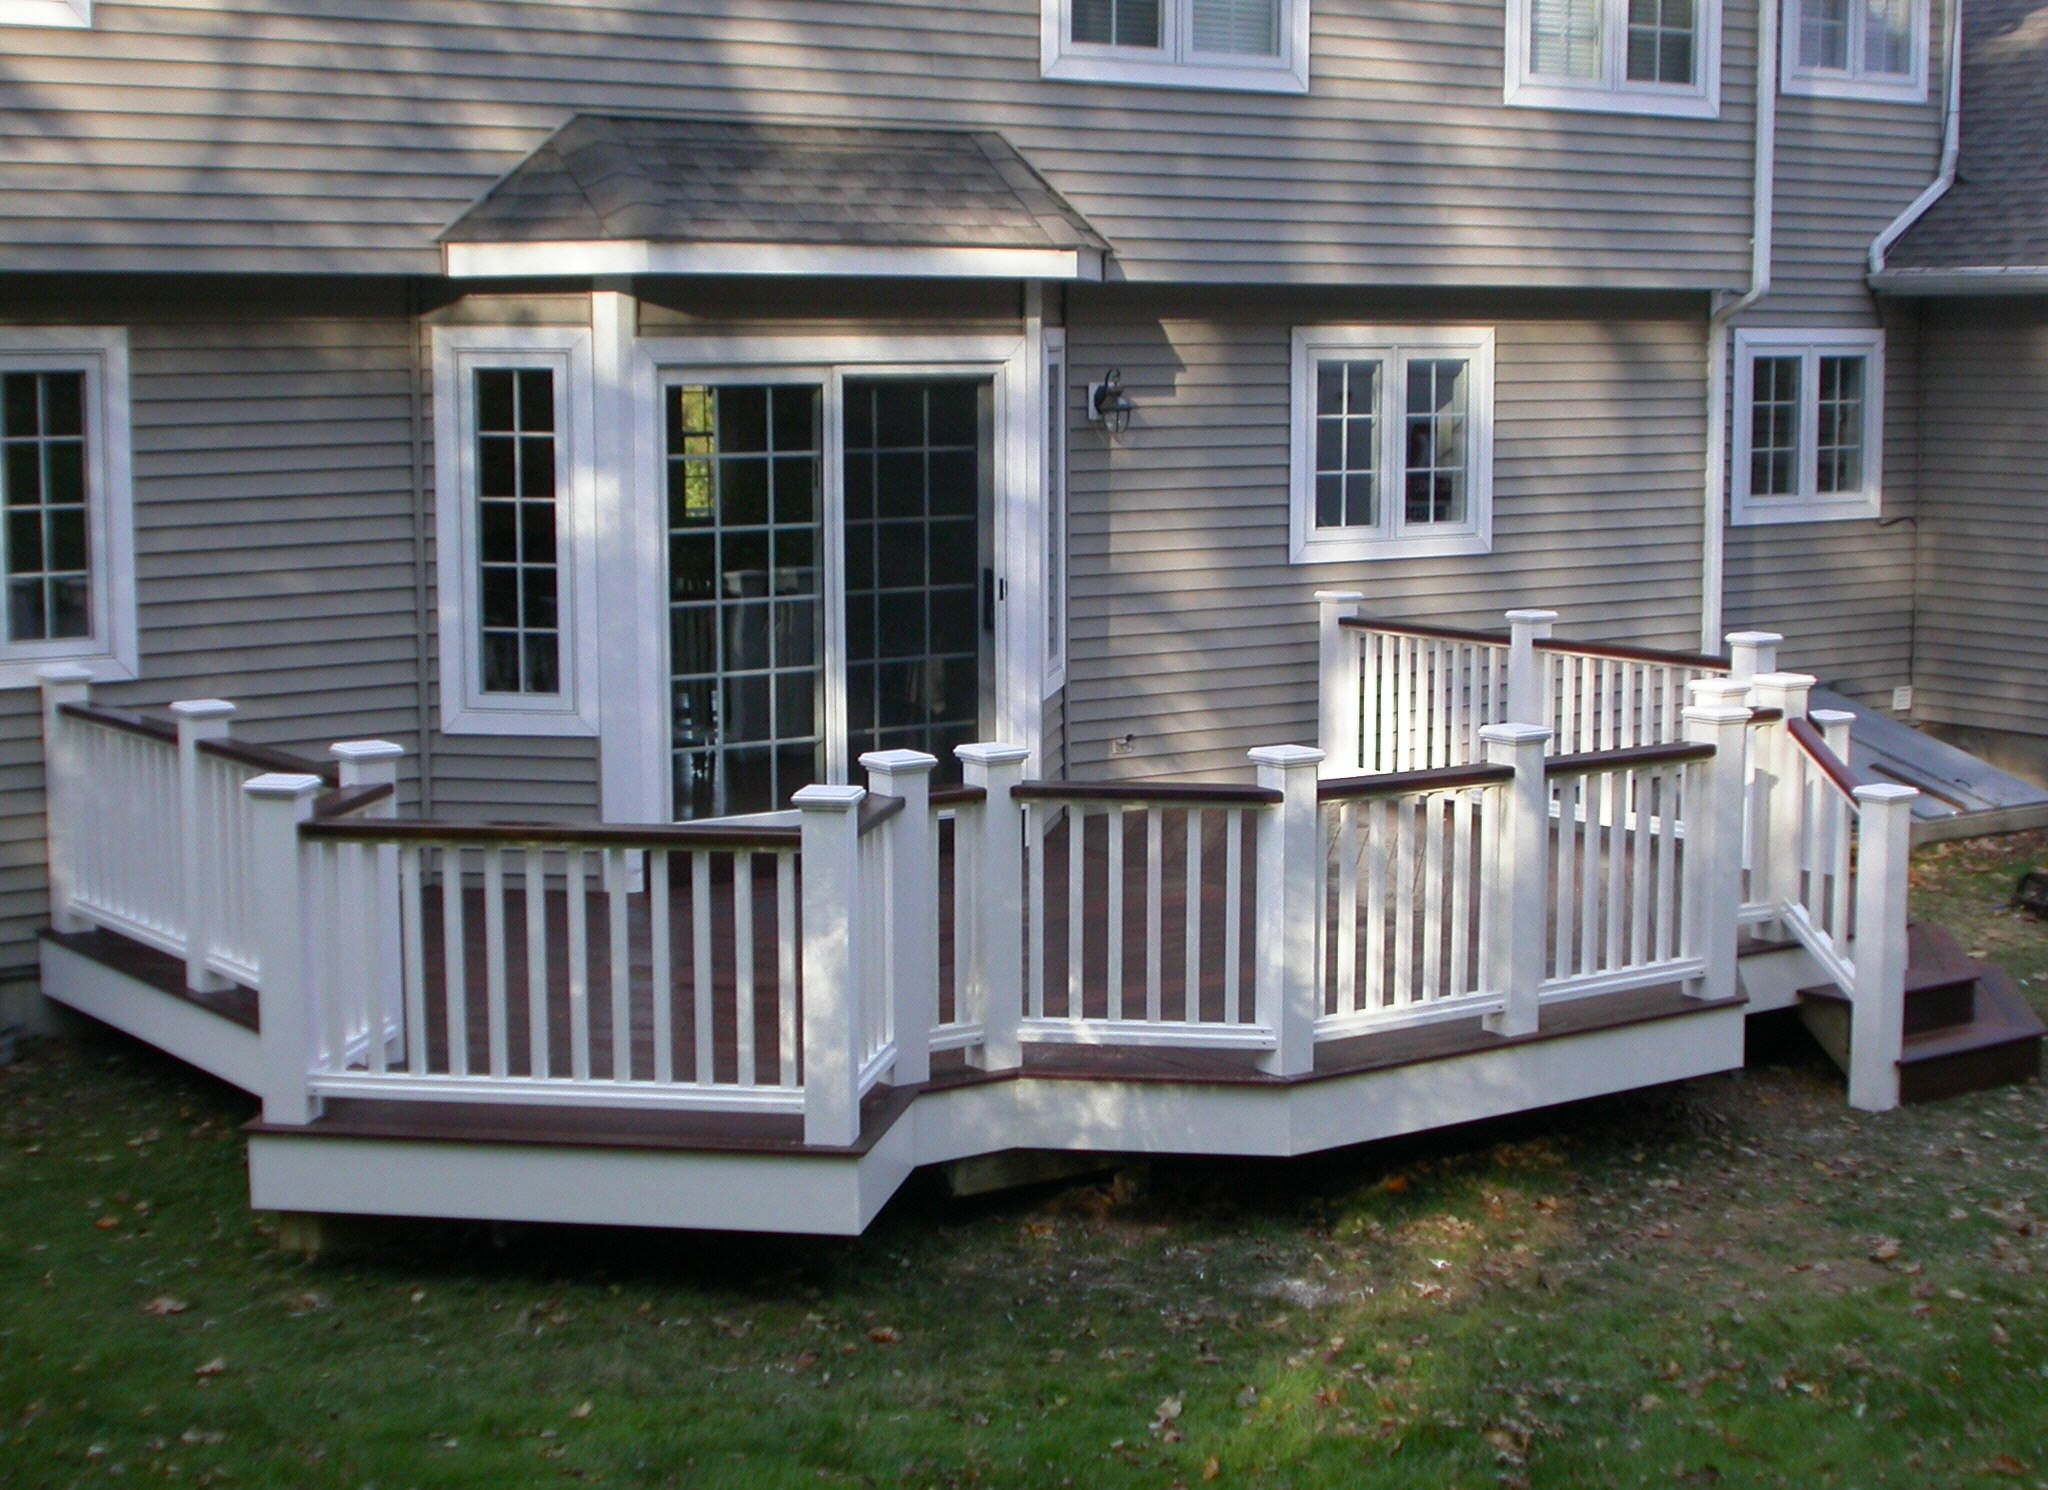 17 best images about decks on pinterest hot tub deck white vinyl and decks - Trex Deck Design Ideas